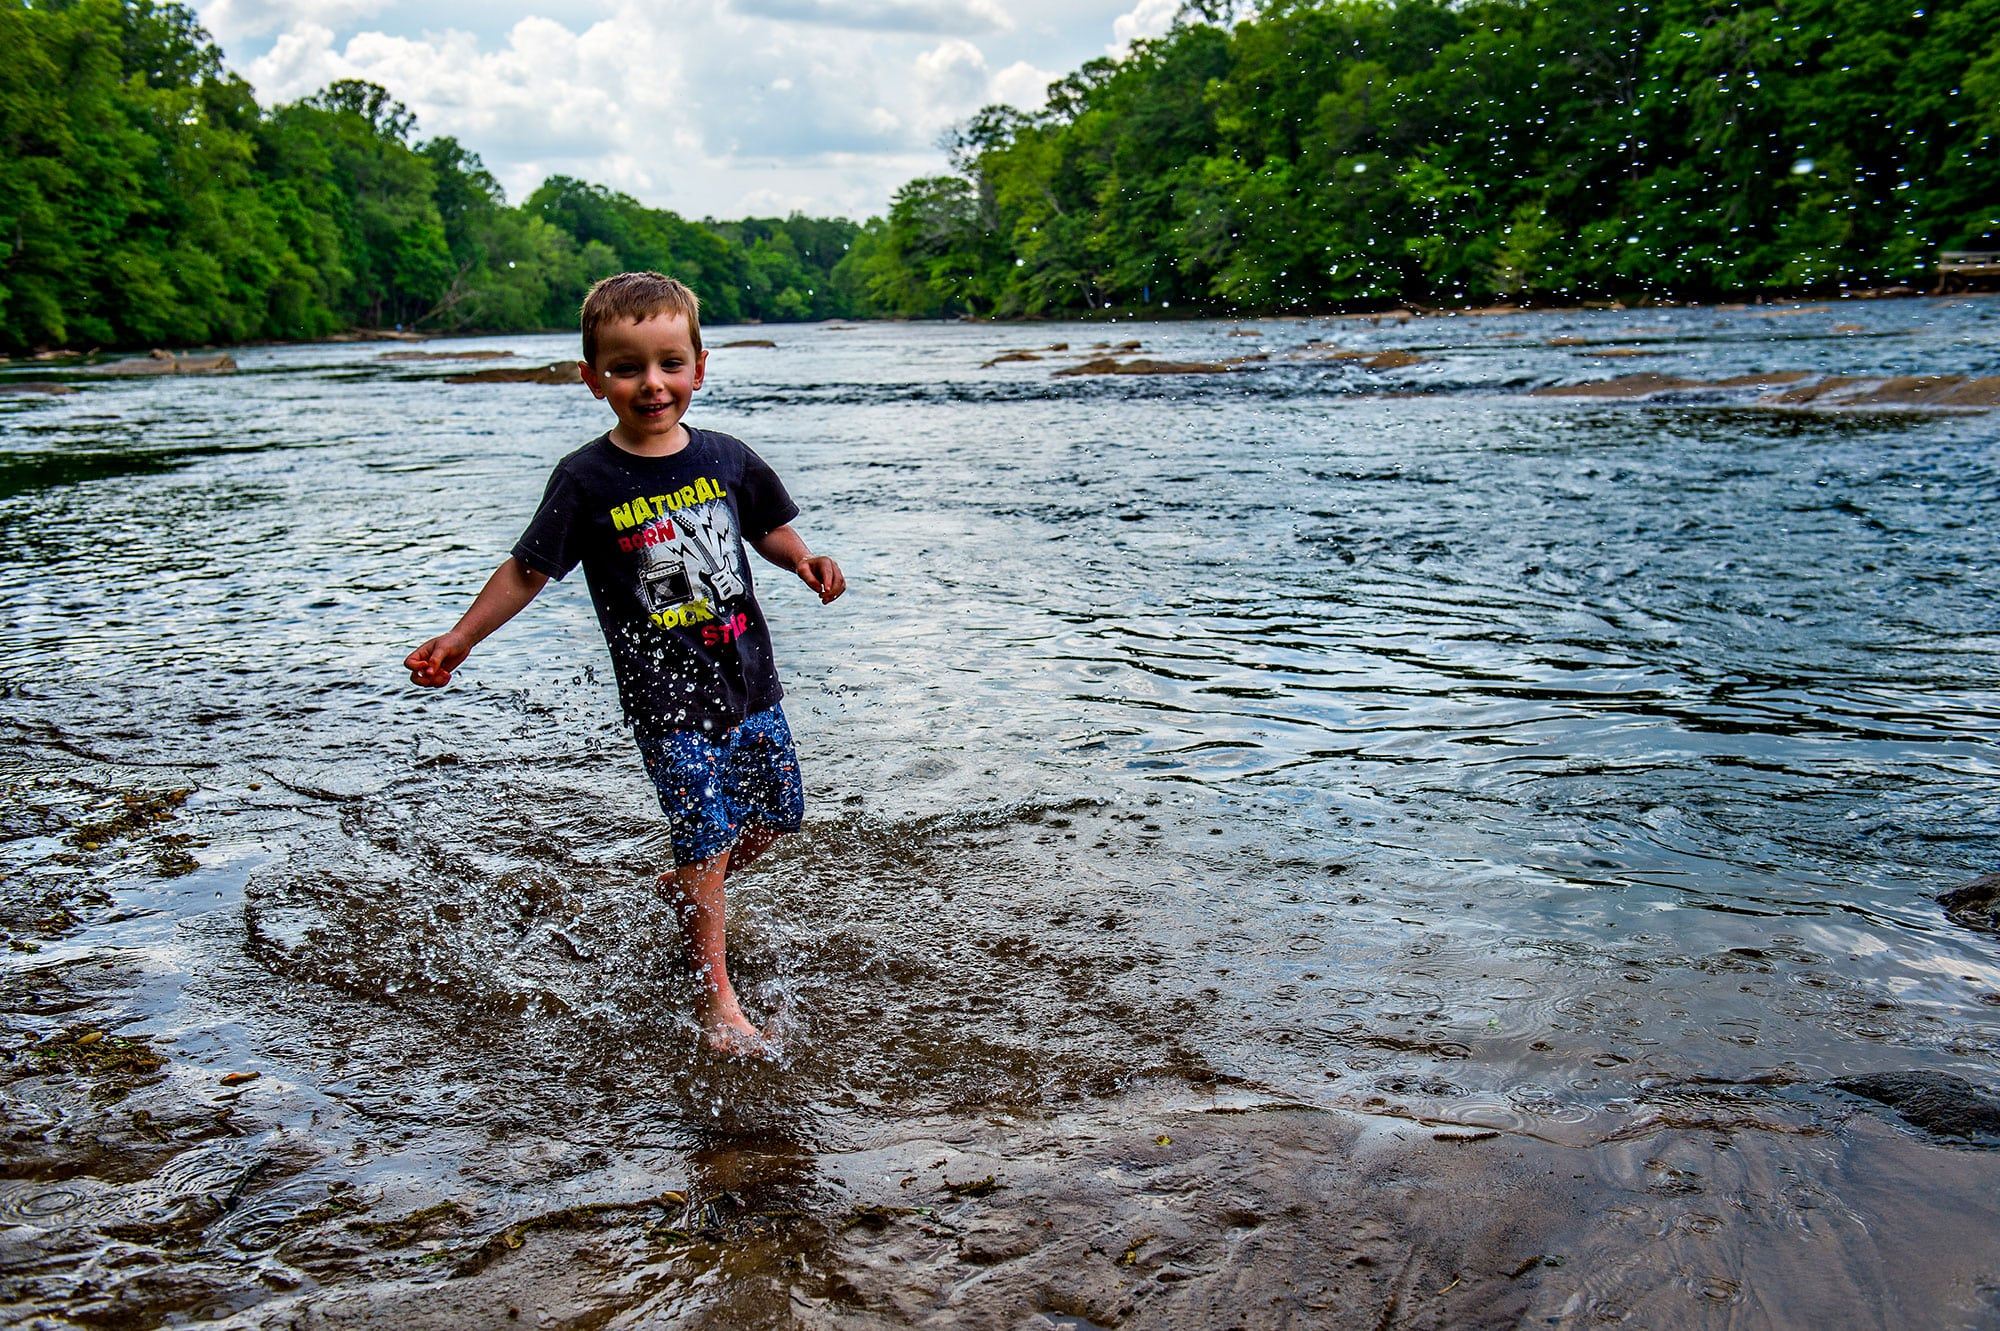 Child wading in the Chattahoochee River in Peachtree Corners, Georgia